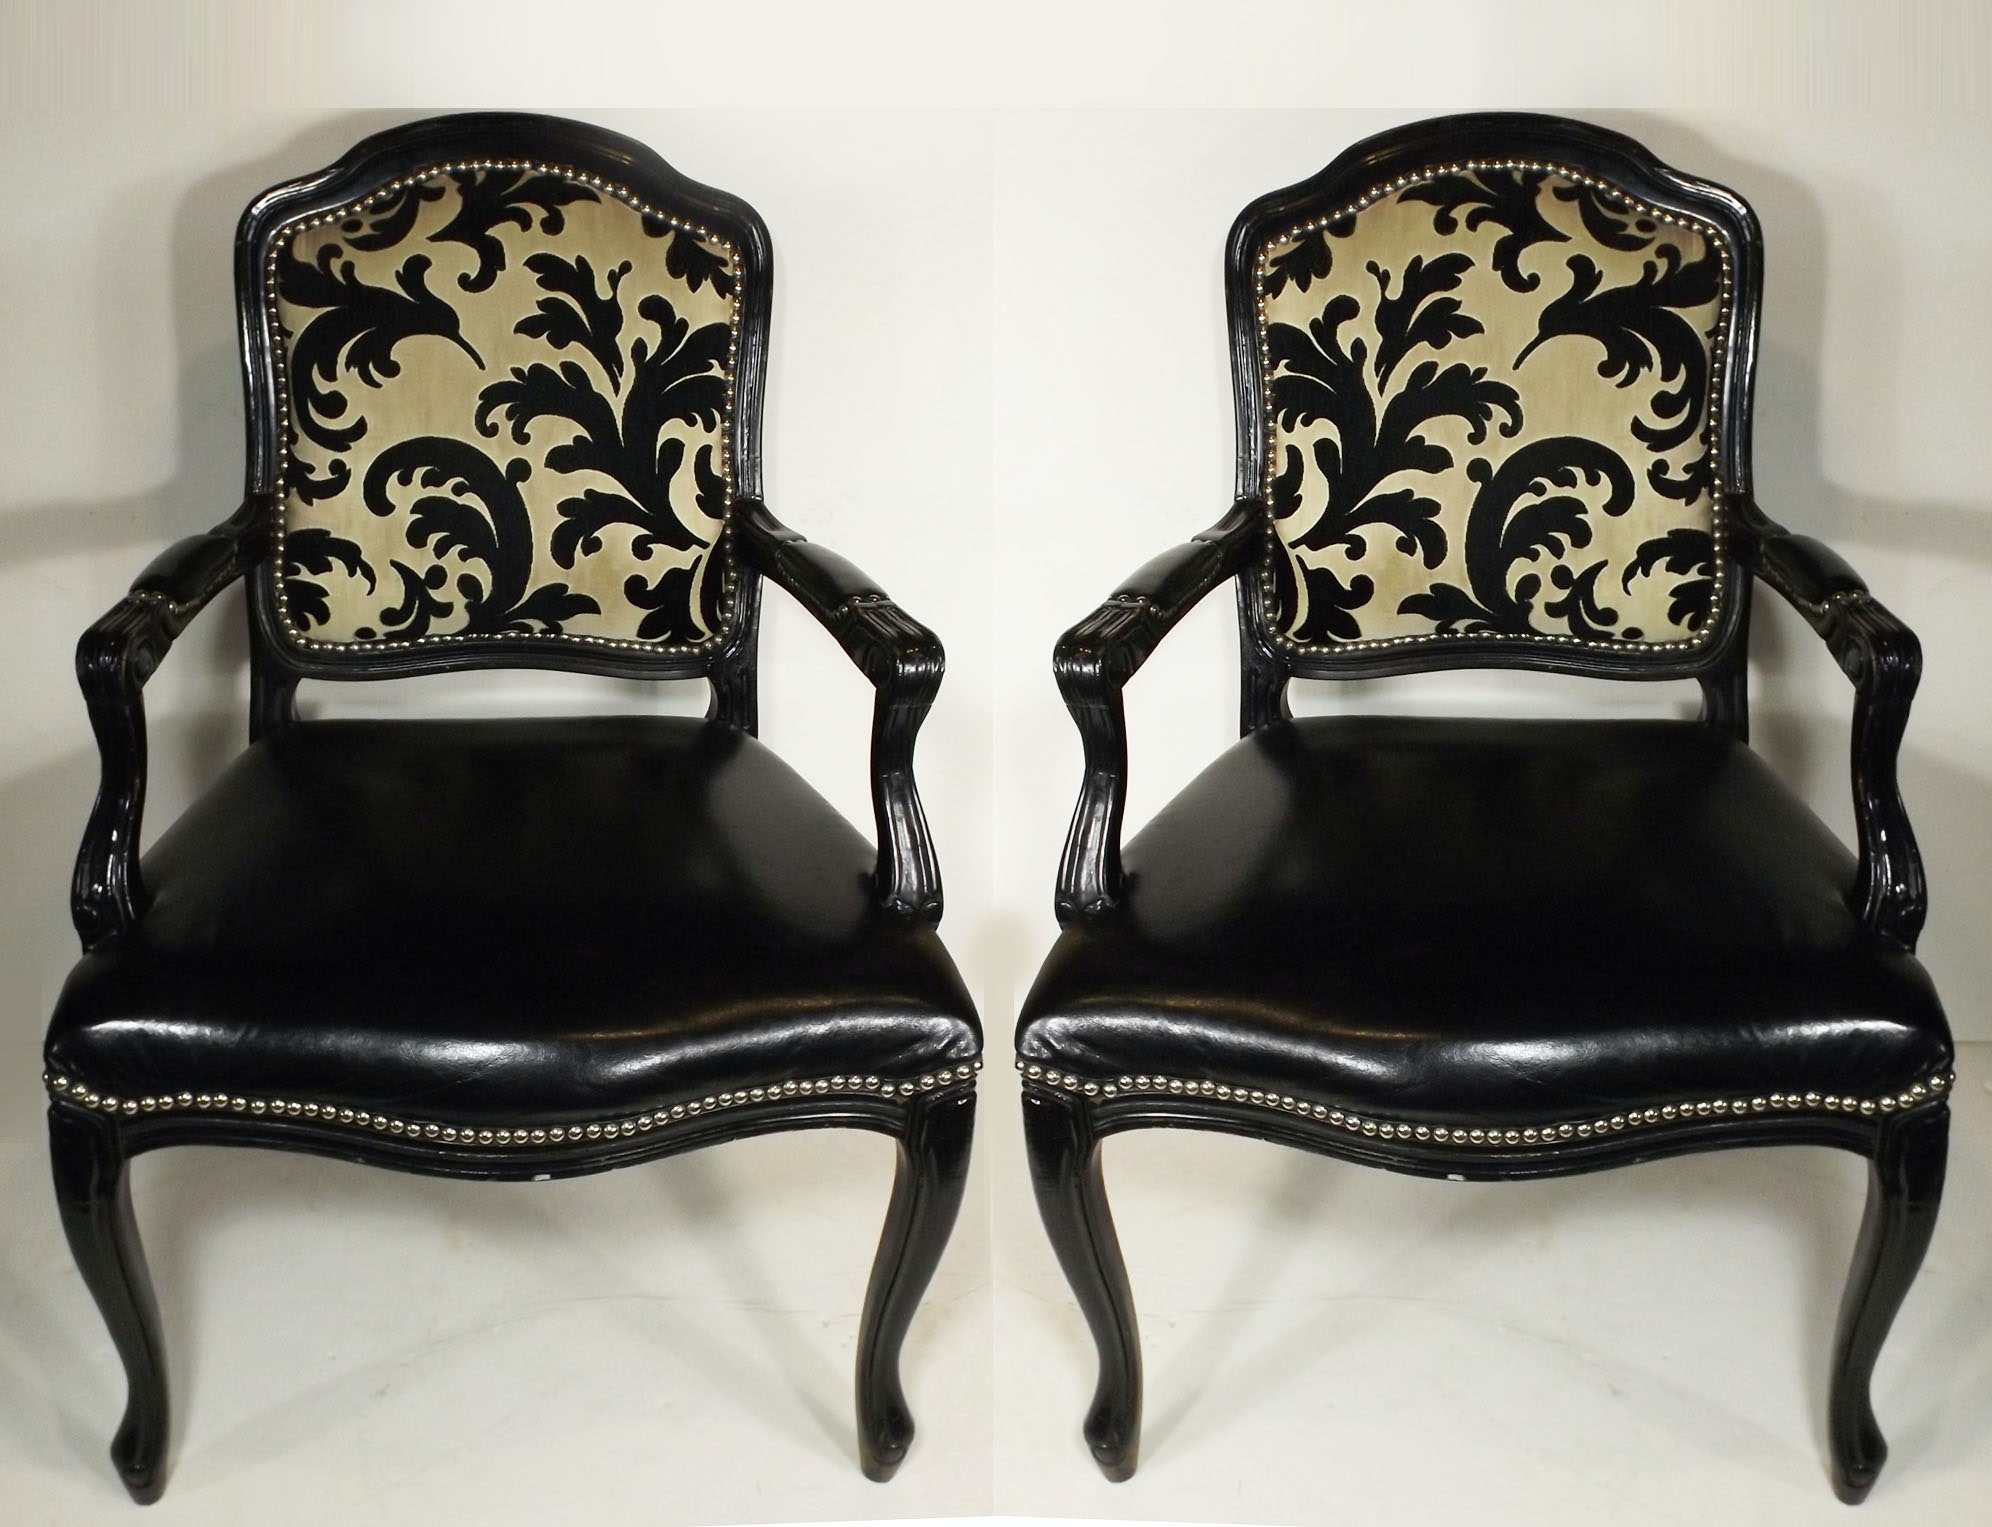 Black Painted Fauteuils in FB Signature Upholstery